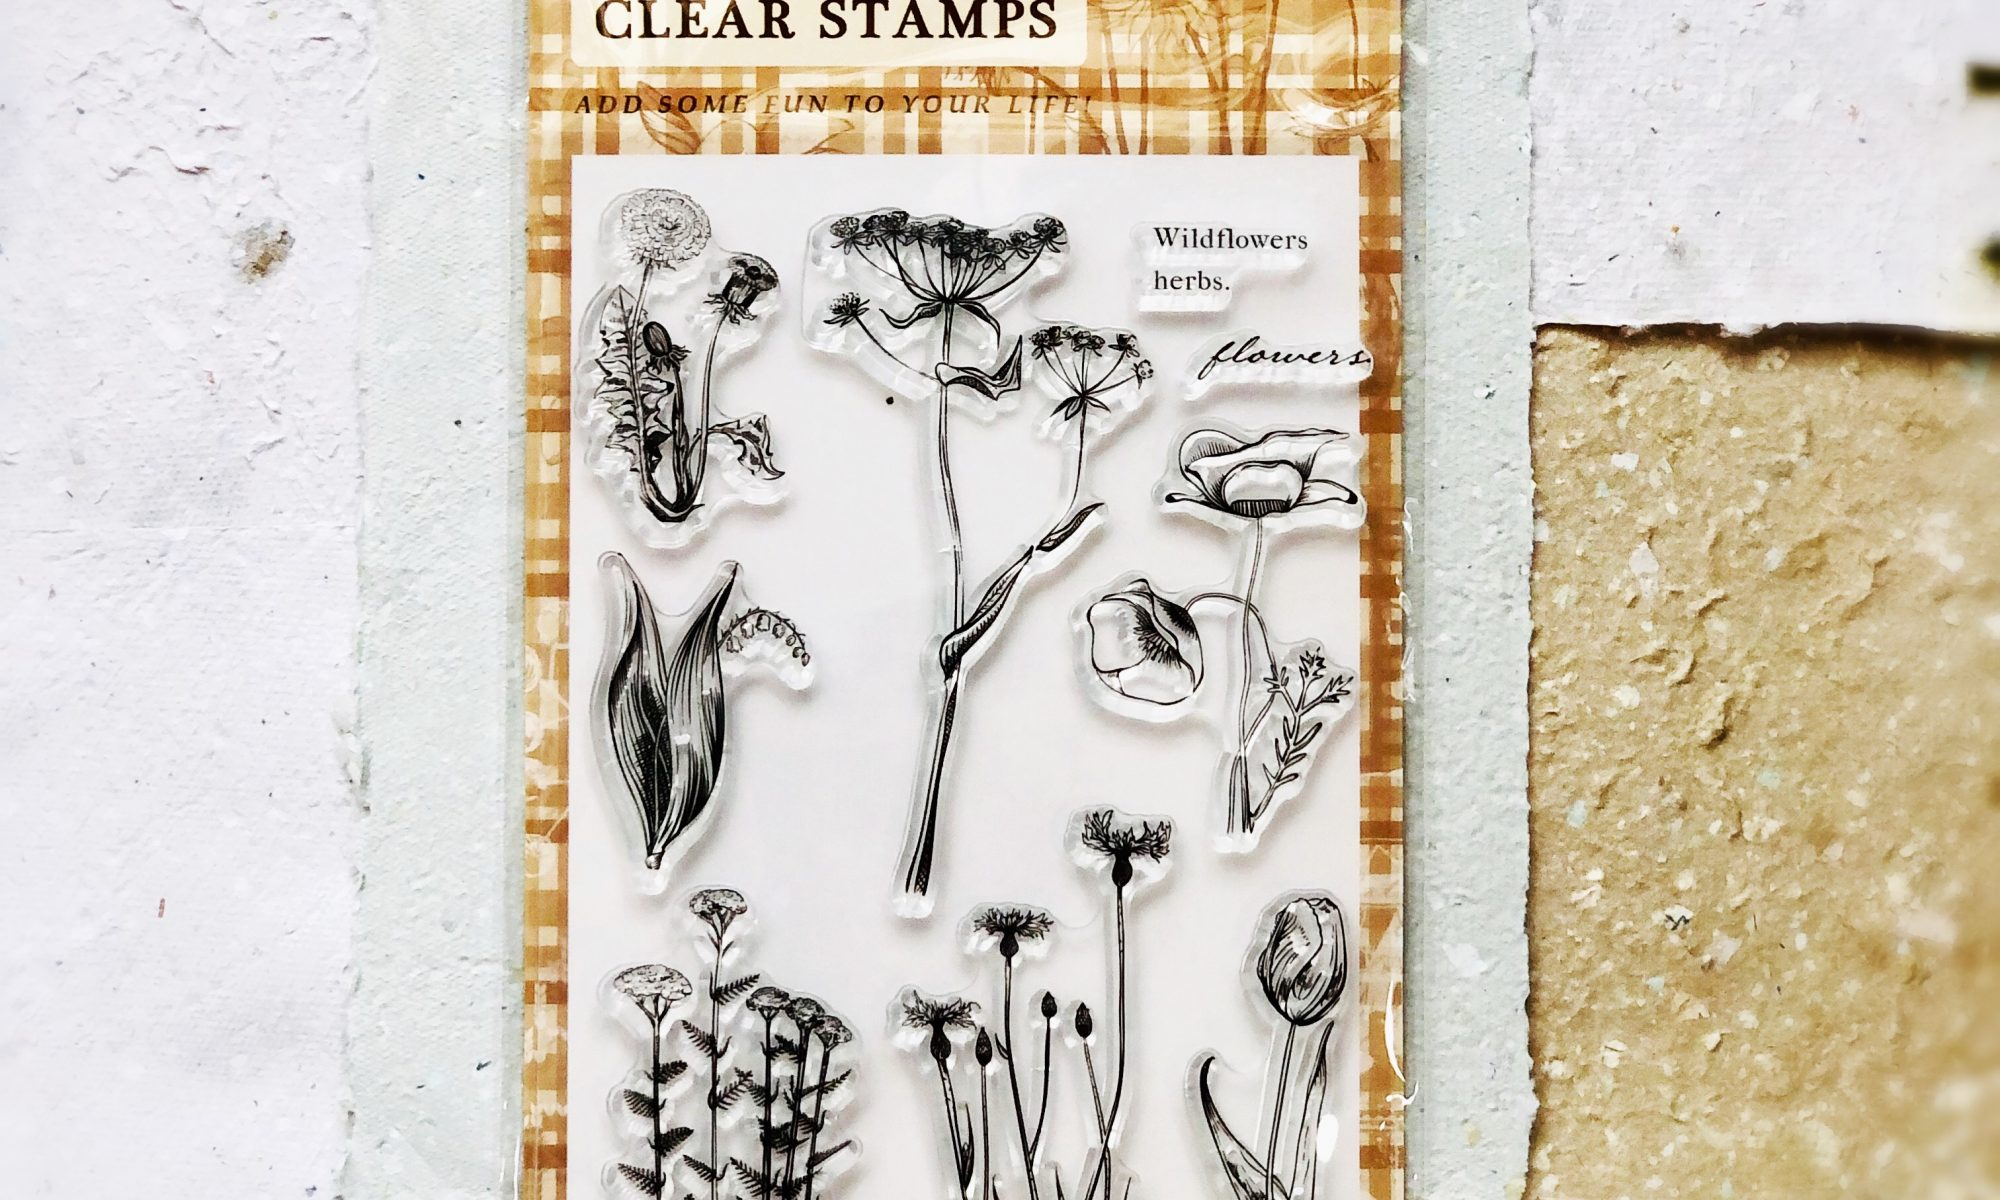 Acrylic Clear Stamps Vintage Designs Tim Holtz